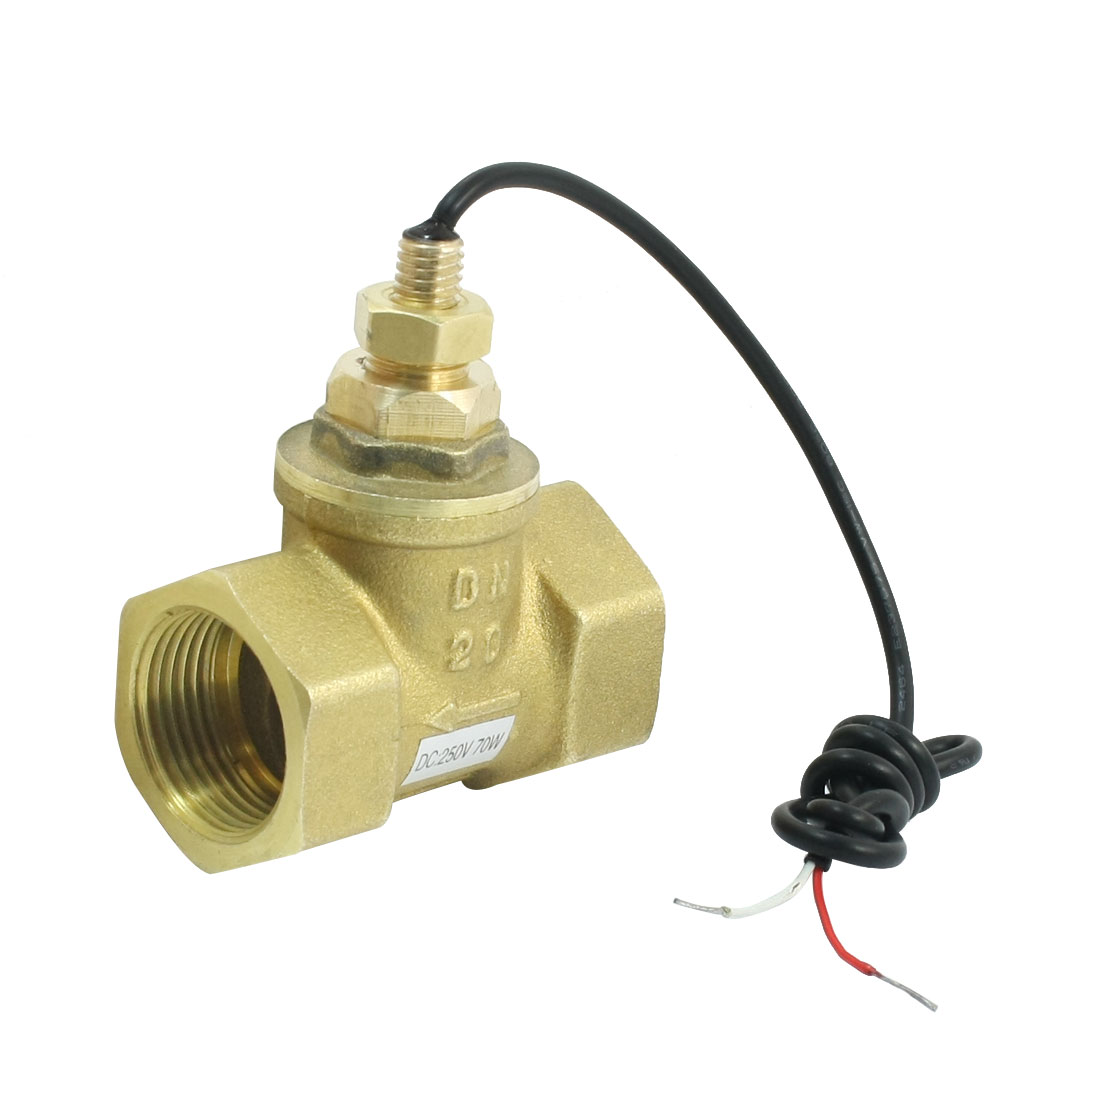 1-30L/Min 10mA 70W 3/4PT Female Port Thread Brass Piston Flow Sensor Switch Flowmeter